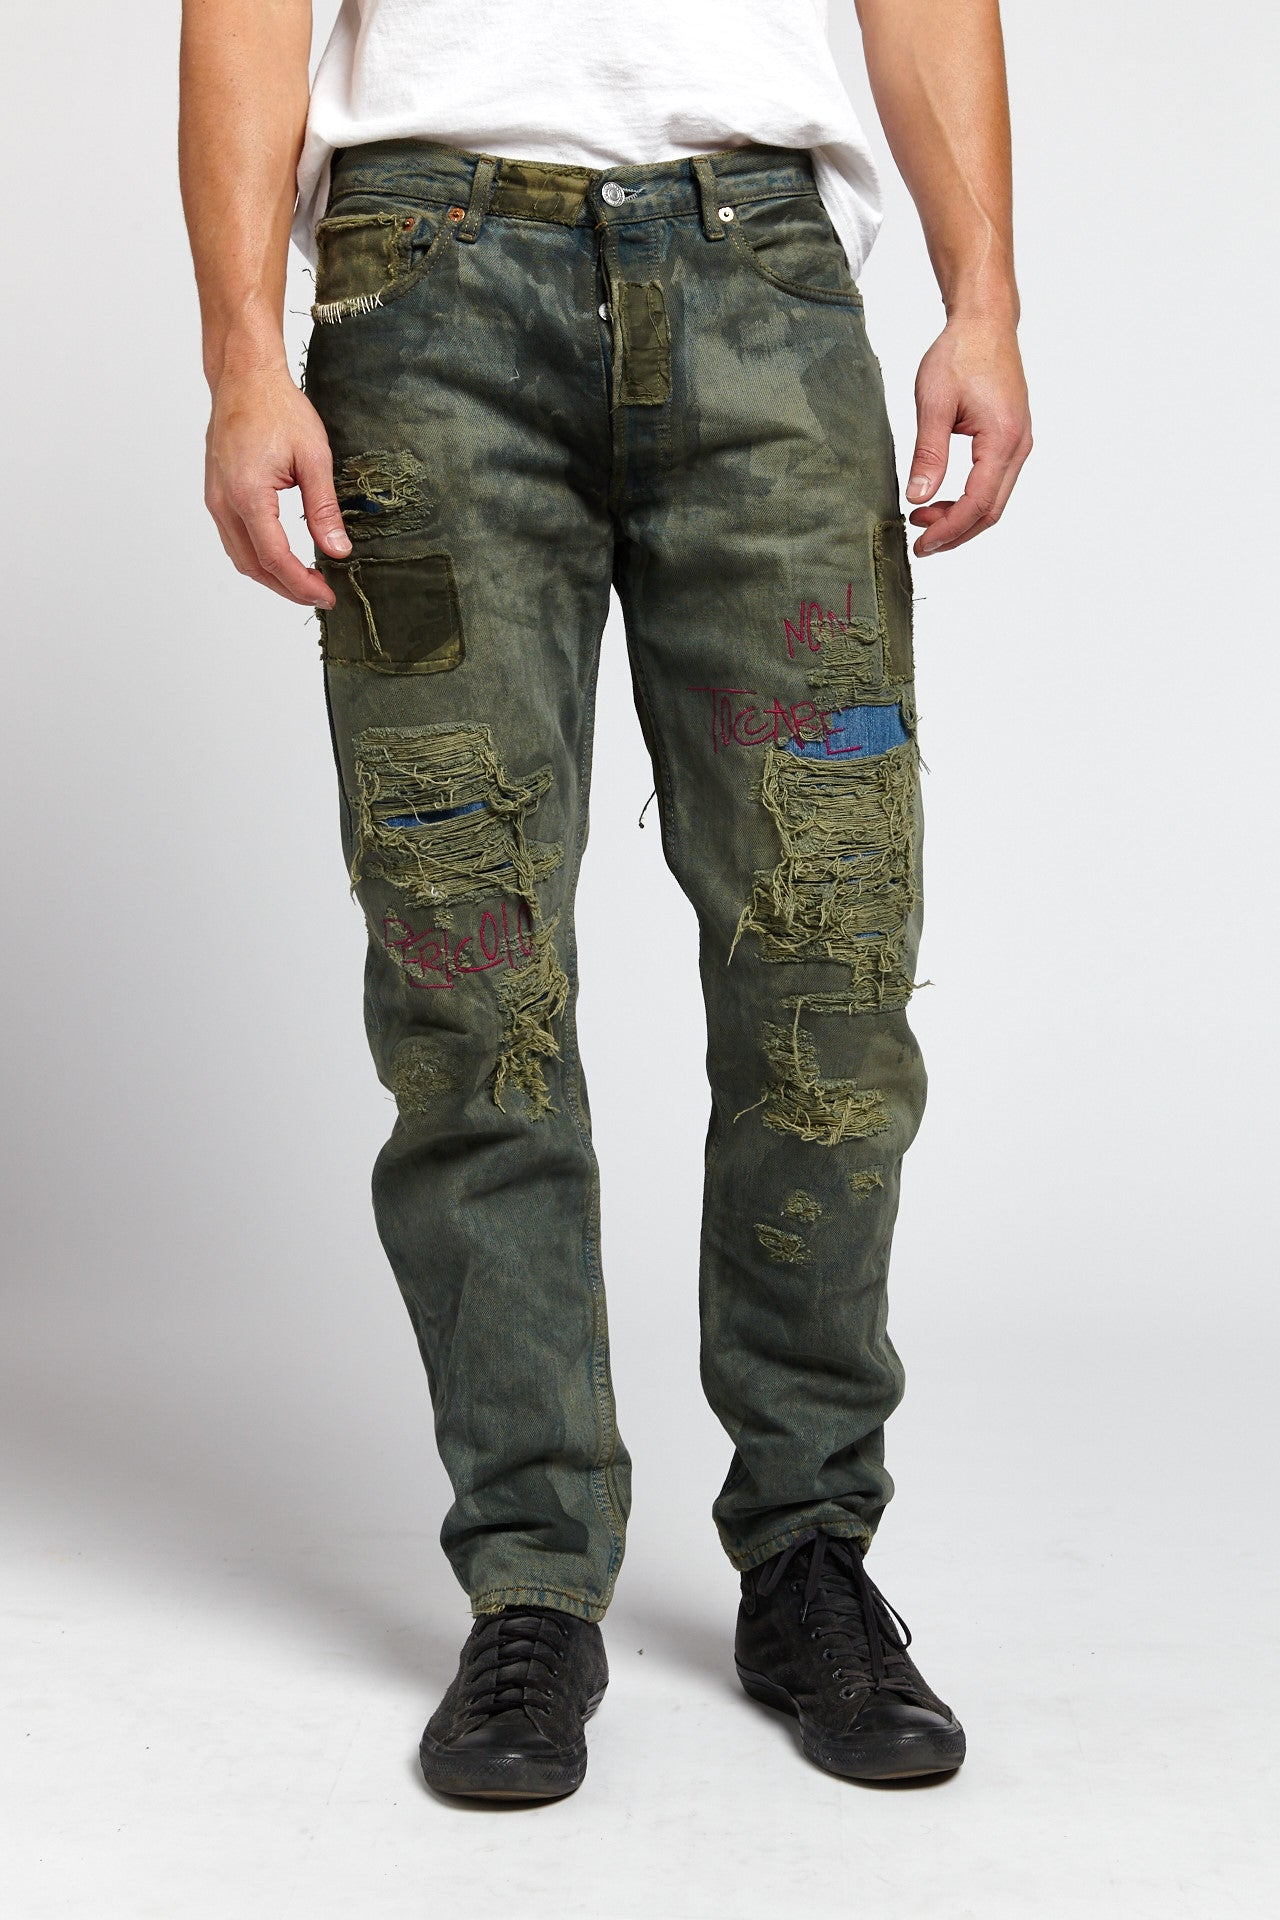 TOSSICO DISTRESSED COTTON BLUE GREEN 34 W JEANS-BOTTOMS-Mundane Official-34-BLUE/GREEN-Mundane Official